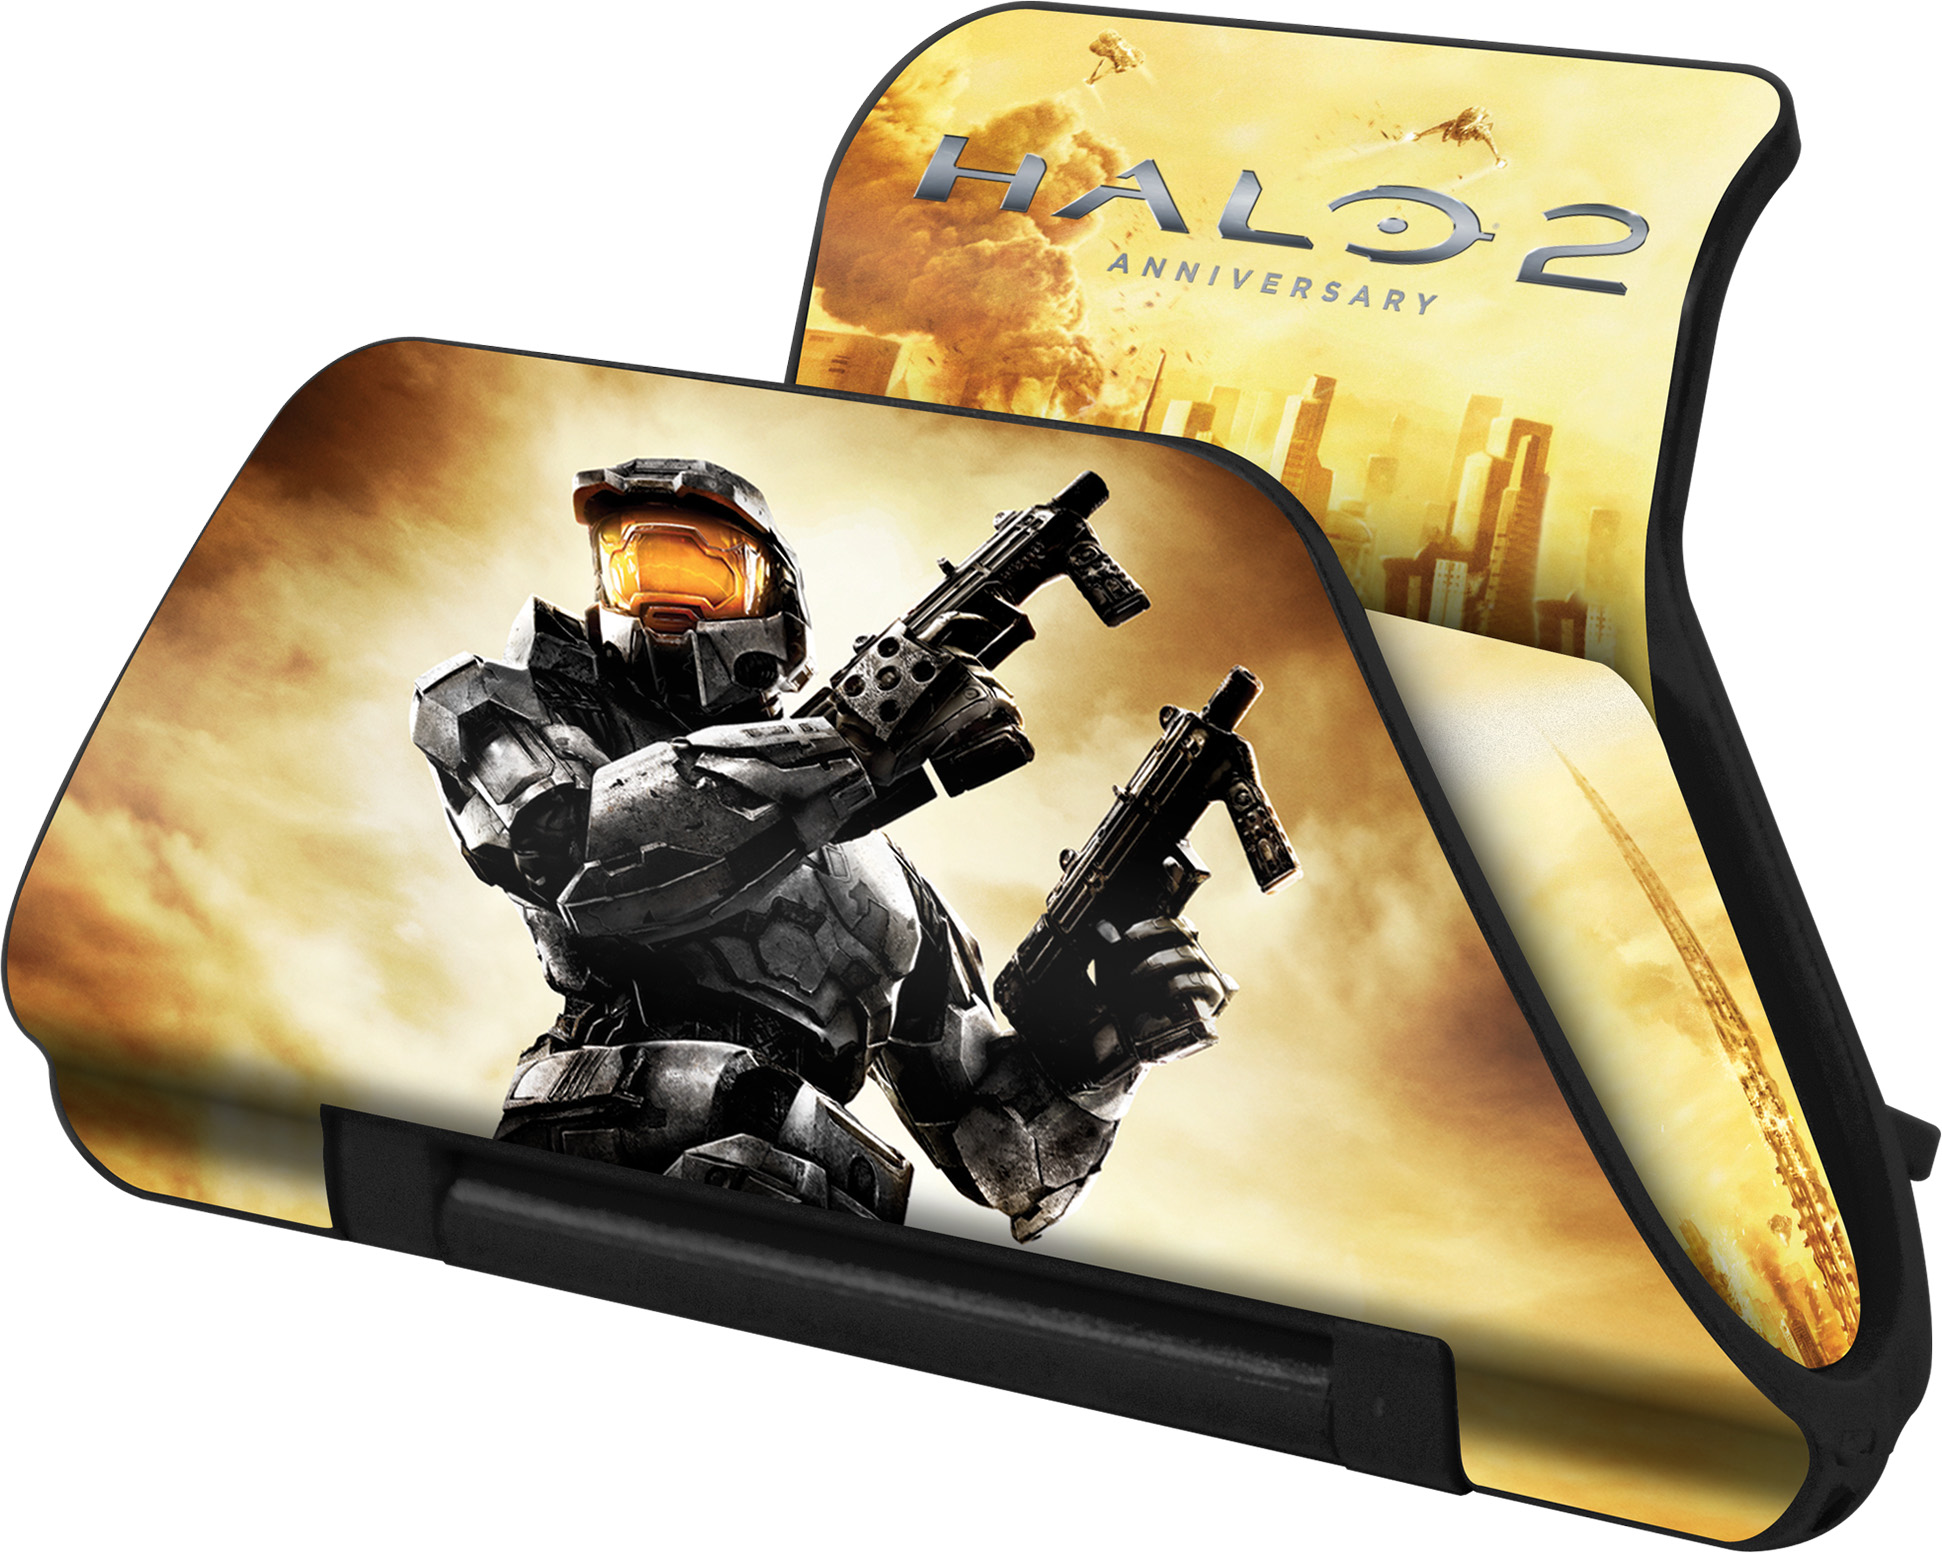 Halo 2 Anniversary Special Edition Controller Stand